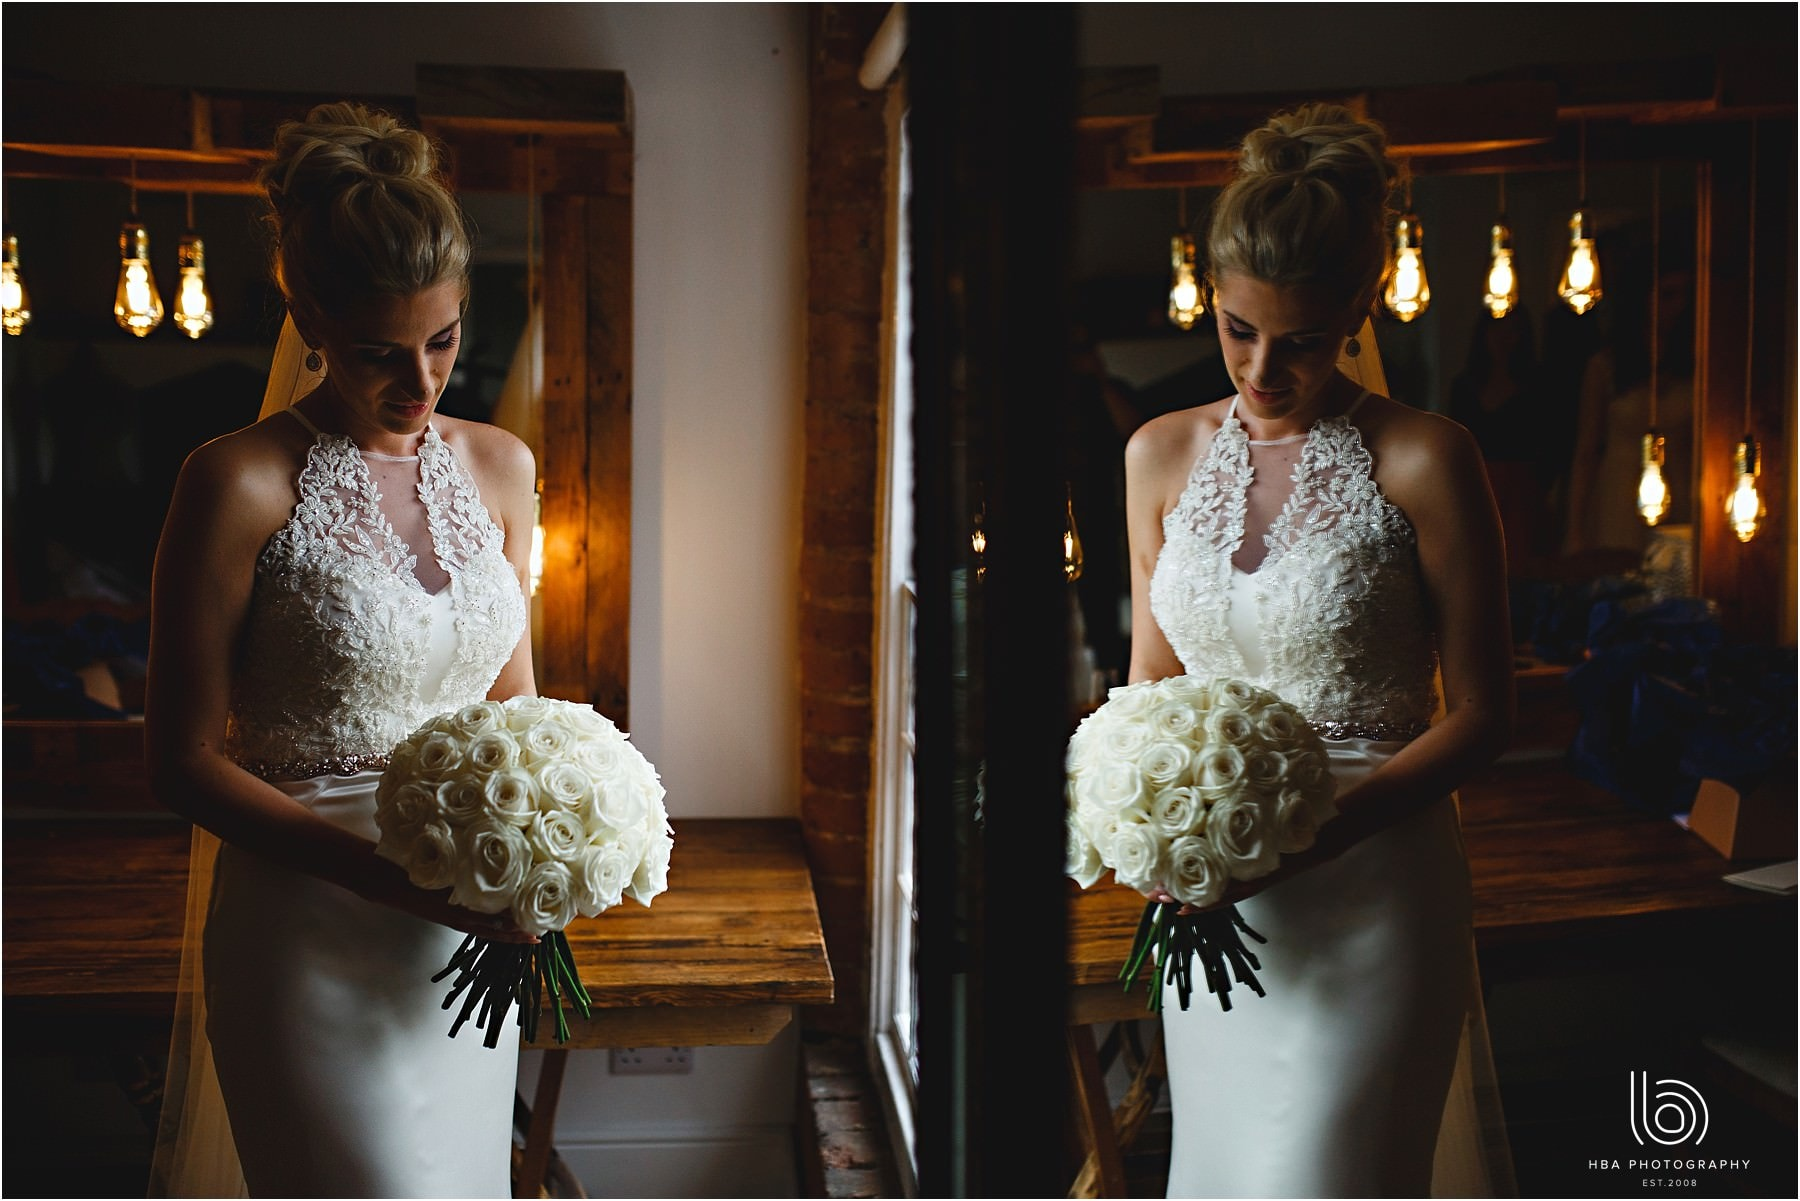 the bride and her boquet looking into the mirror